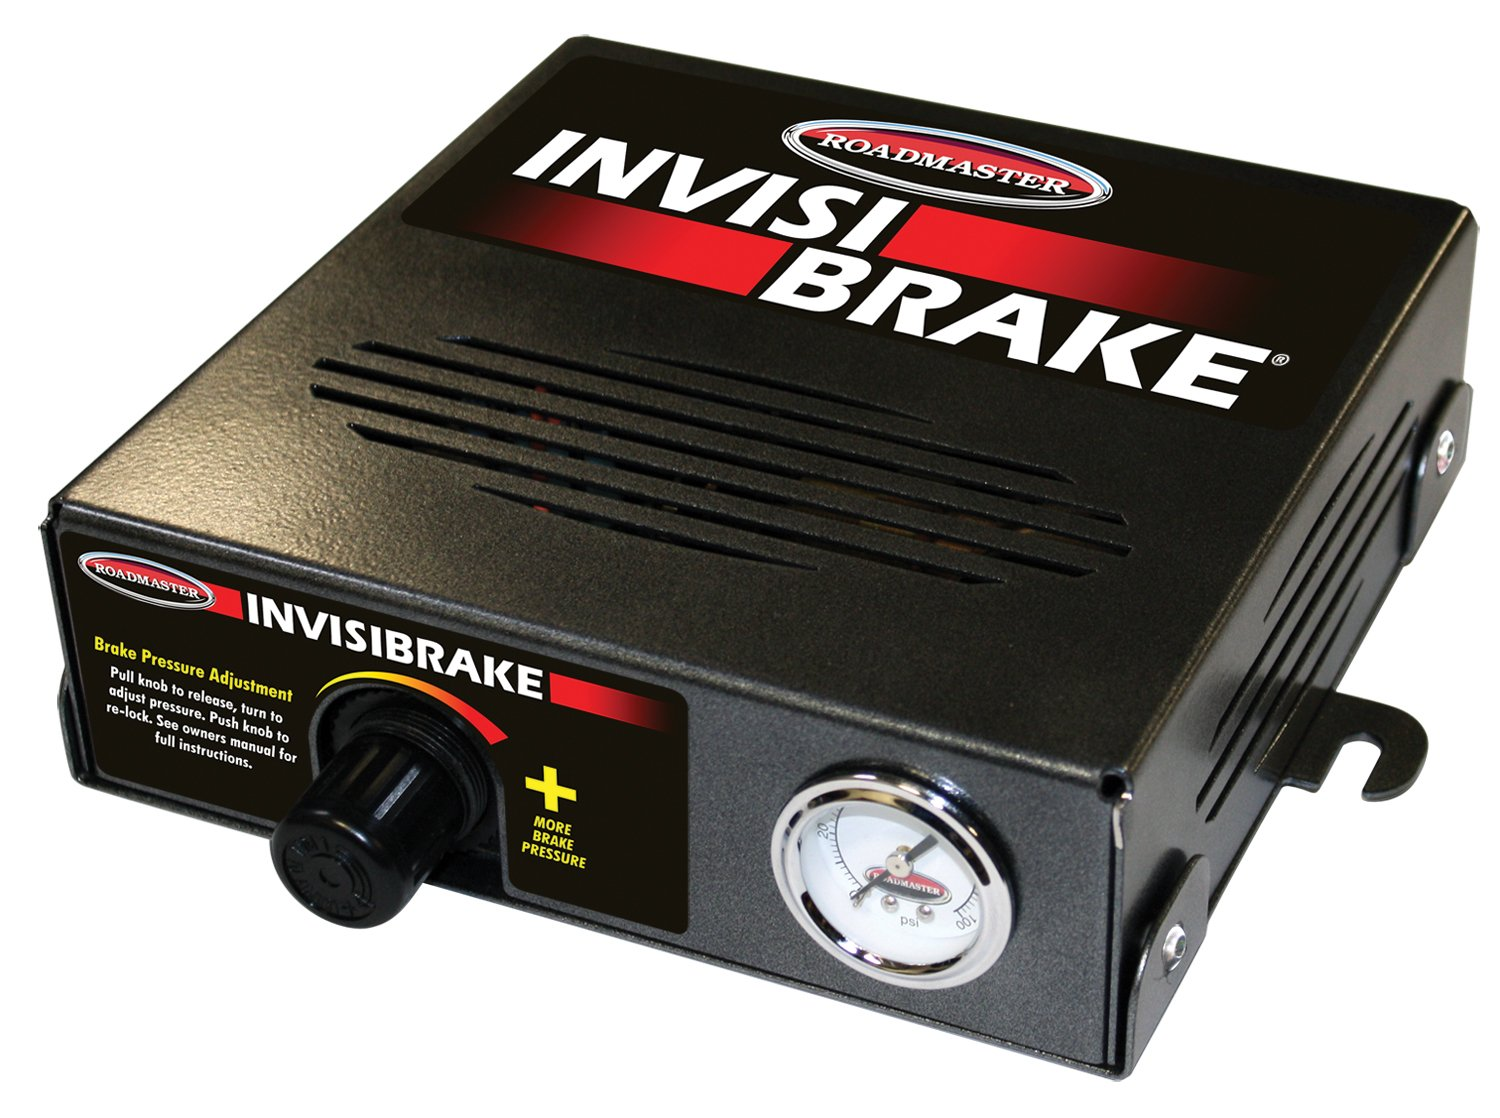 Roadmaster 8700 Invisibrake Hidden Power Braking System Control Maximum When R 0 Short Circuit Brake Automotive